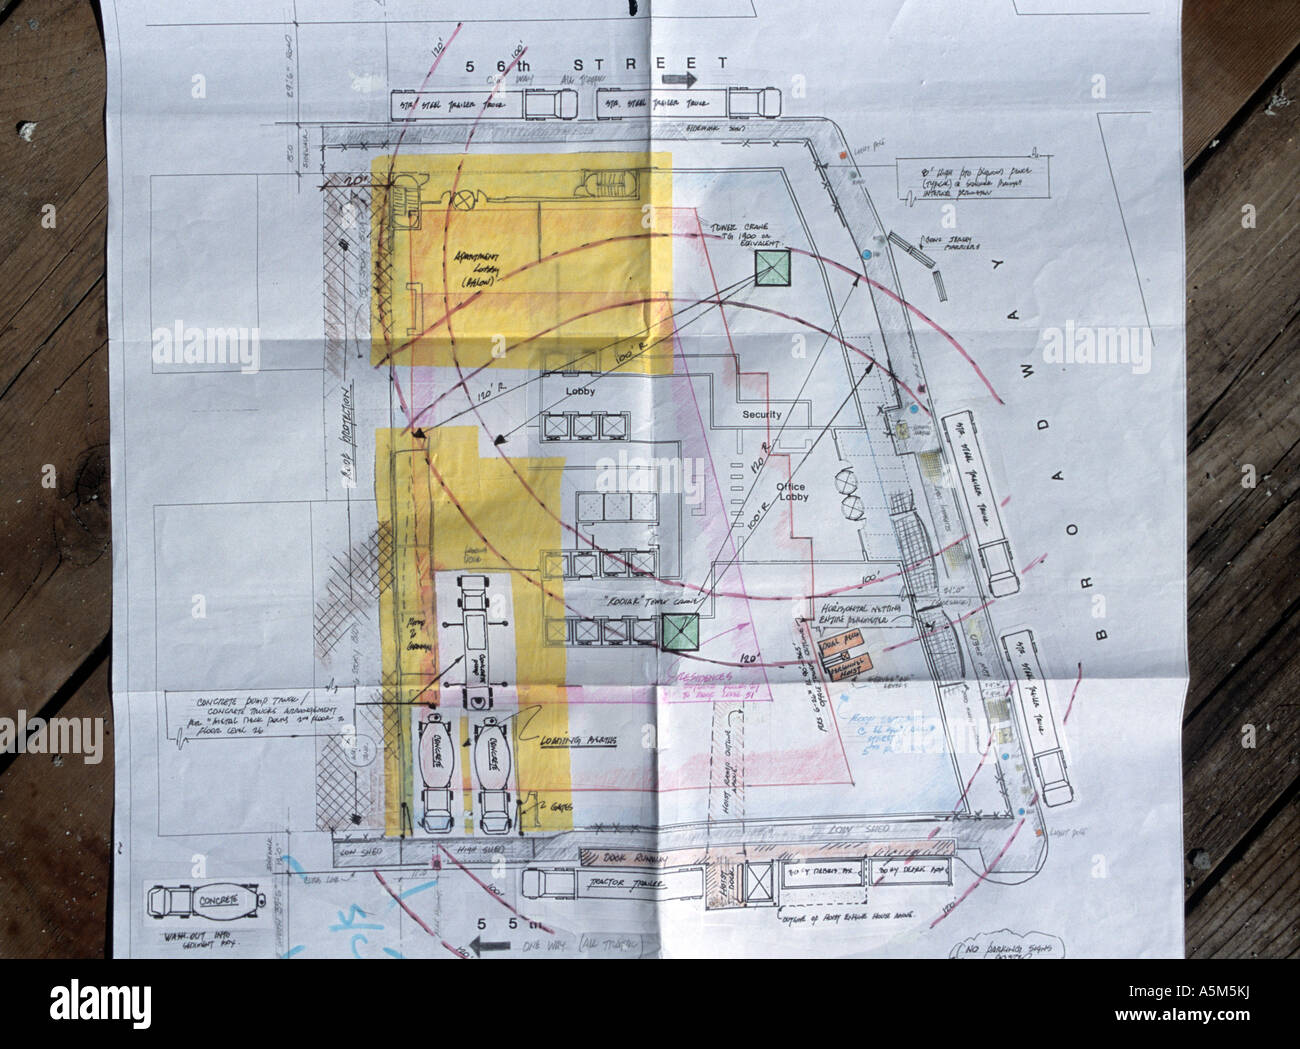 Blueprints from logistical engineers for new random house building blueprints from logistical engineers for new random house building in new york city malvernweather Choice Image